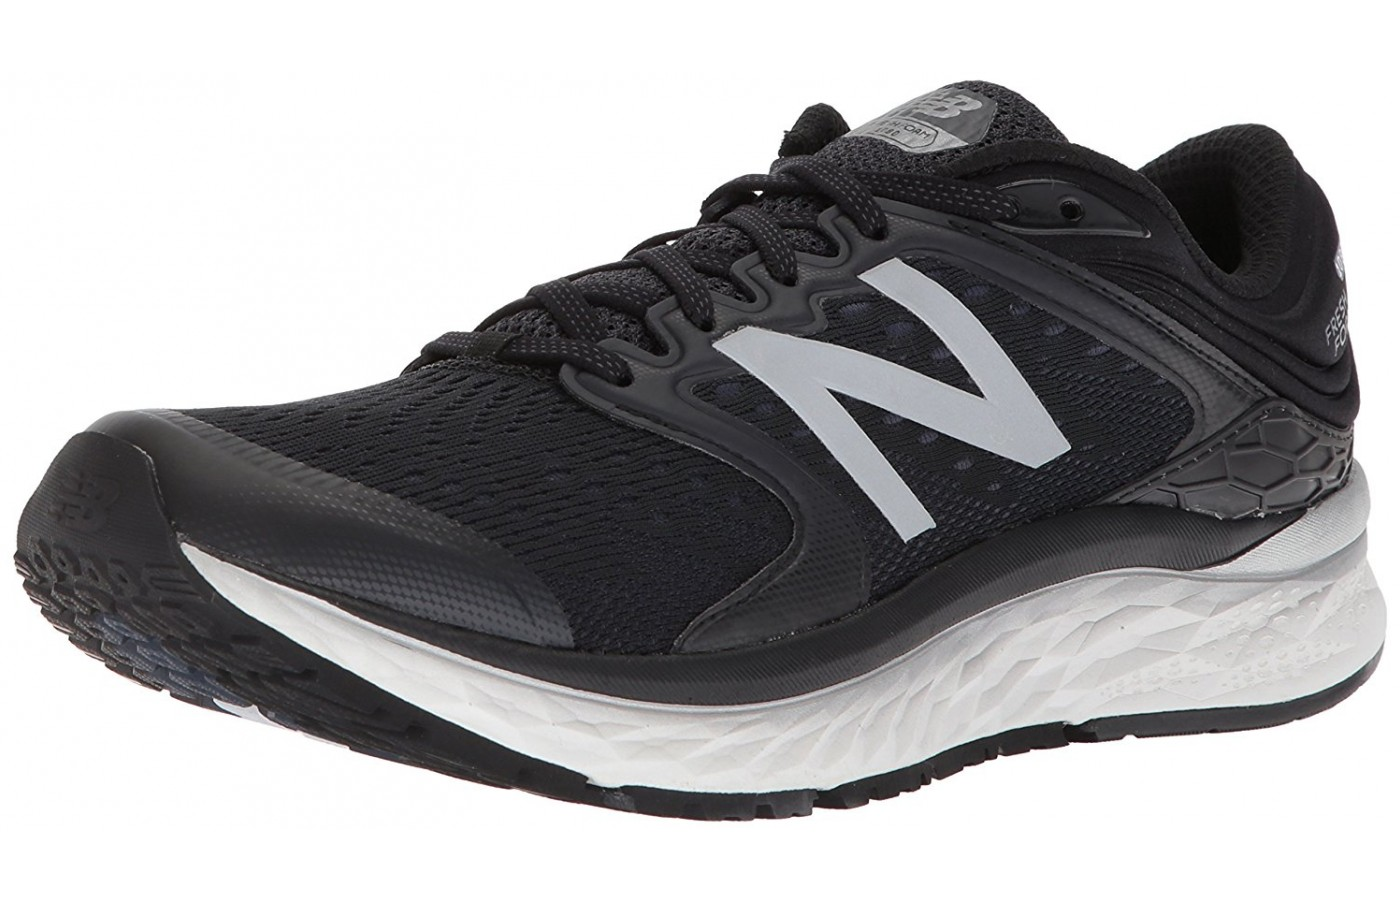 919bbd0bb52d New Balance 1080V8 Reviewed   Tested for Performance. Angled view of 1080 V8  ...